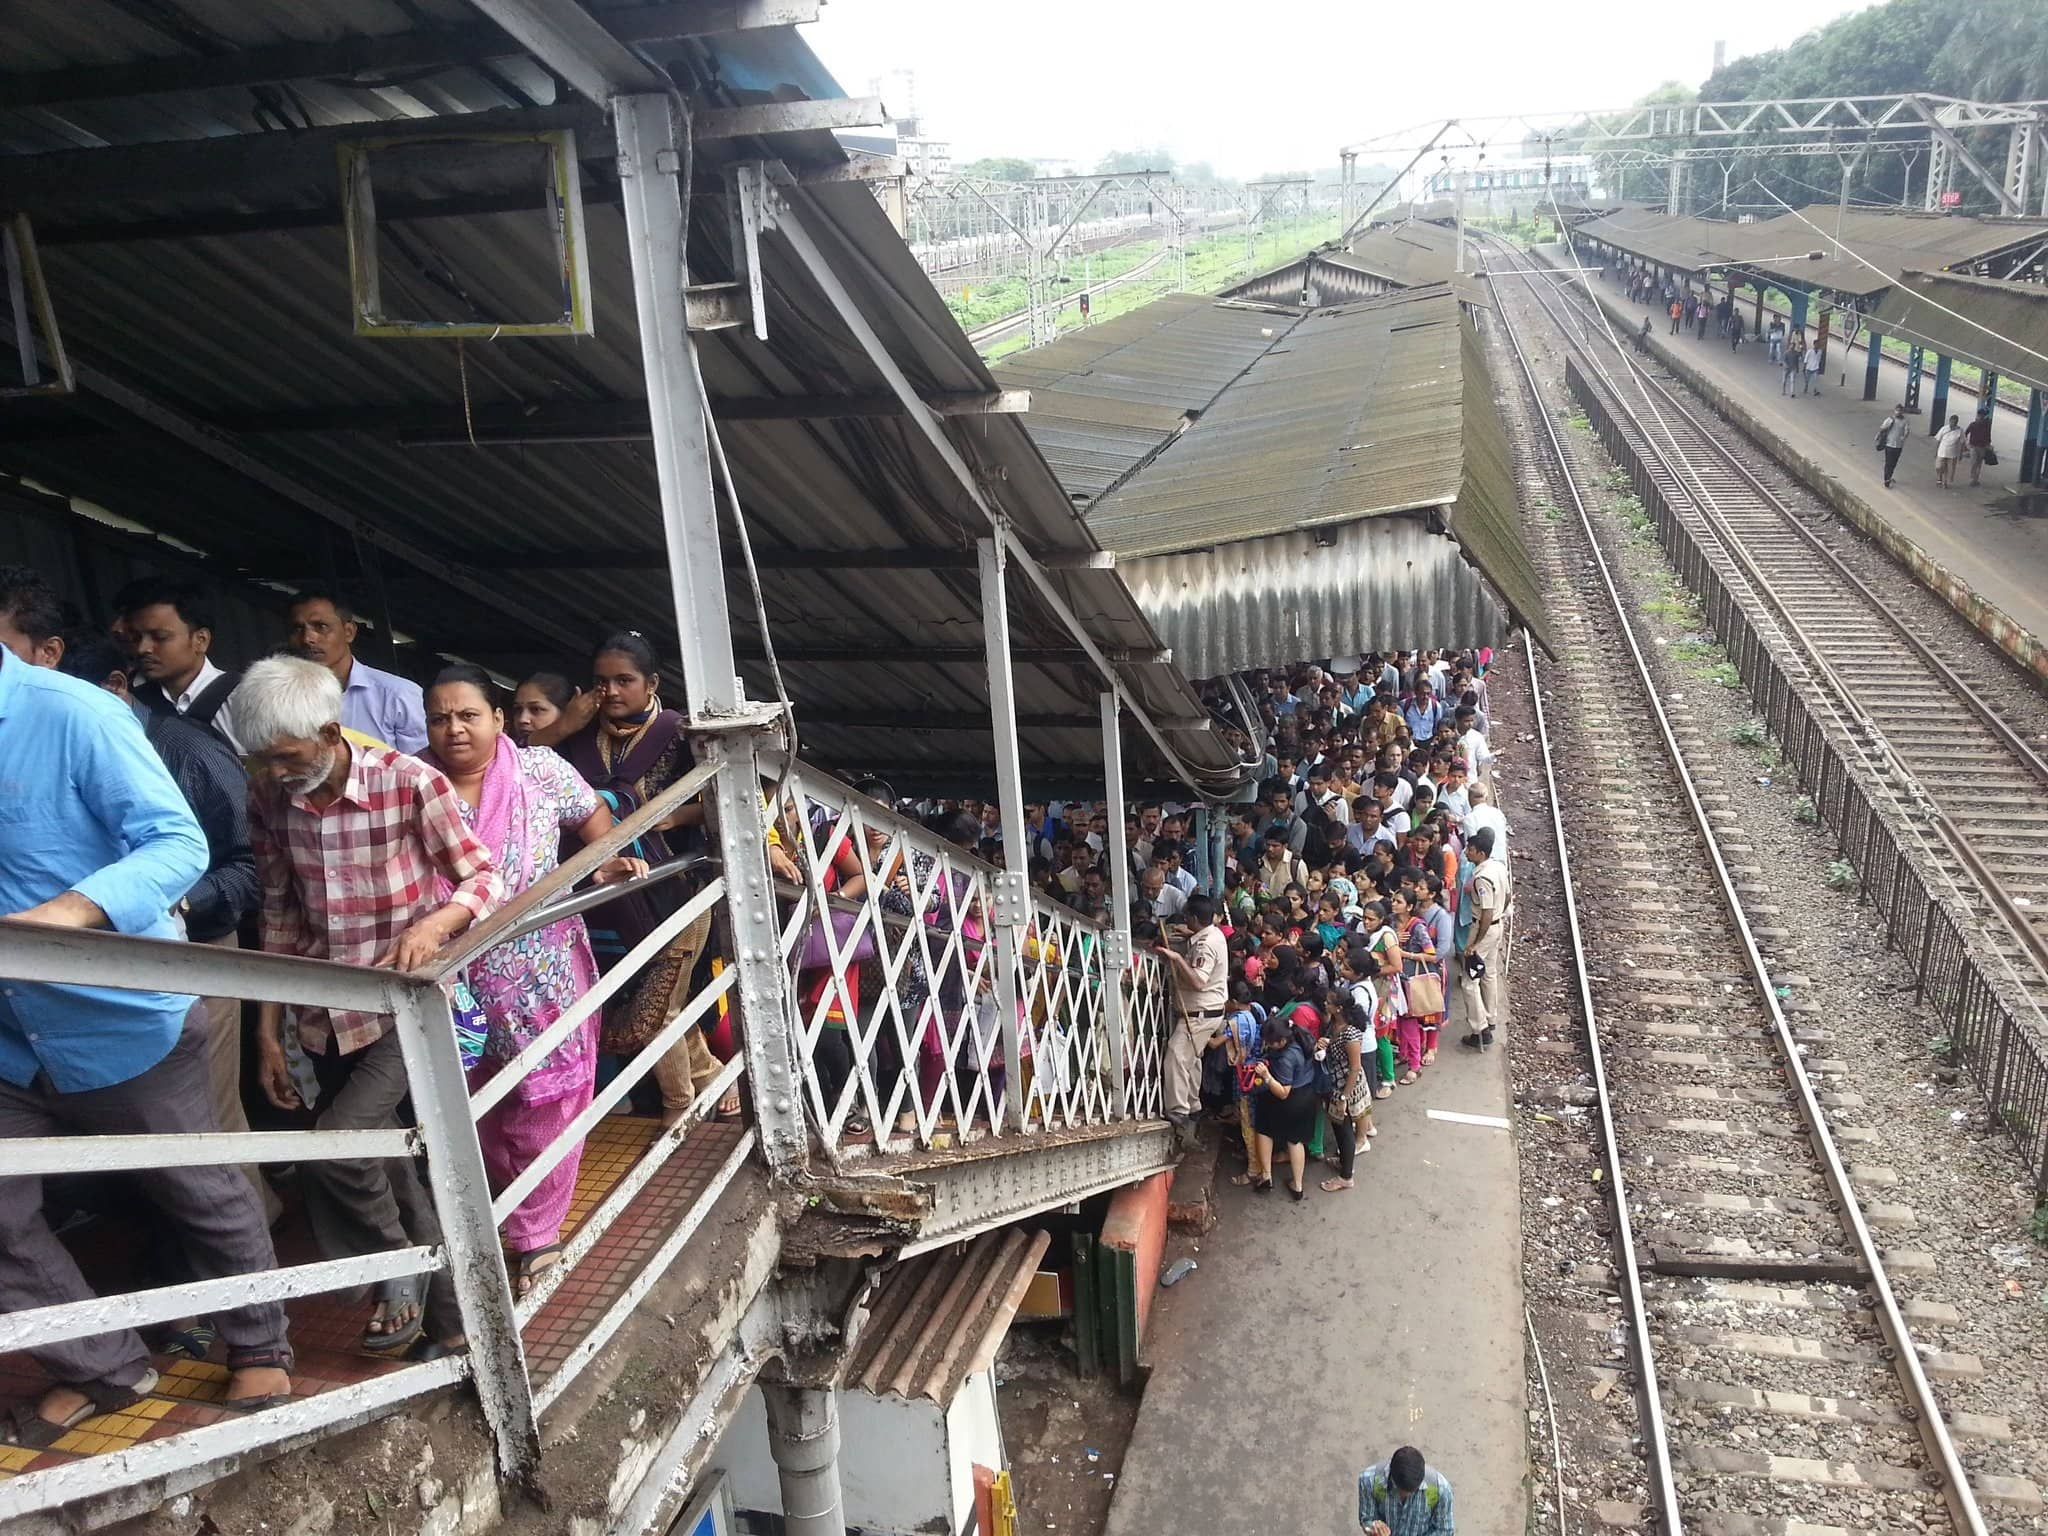 A view of how the foot overbridge in Mumbai's Elphinstone station looked a few months before the stampede took place. Credit: Twitter